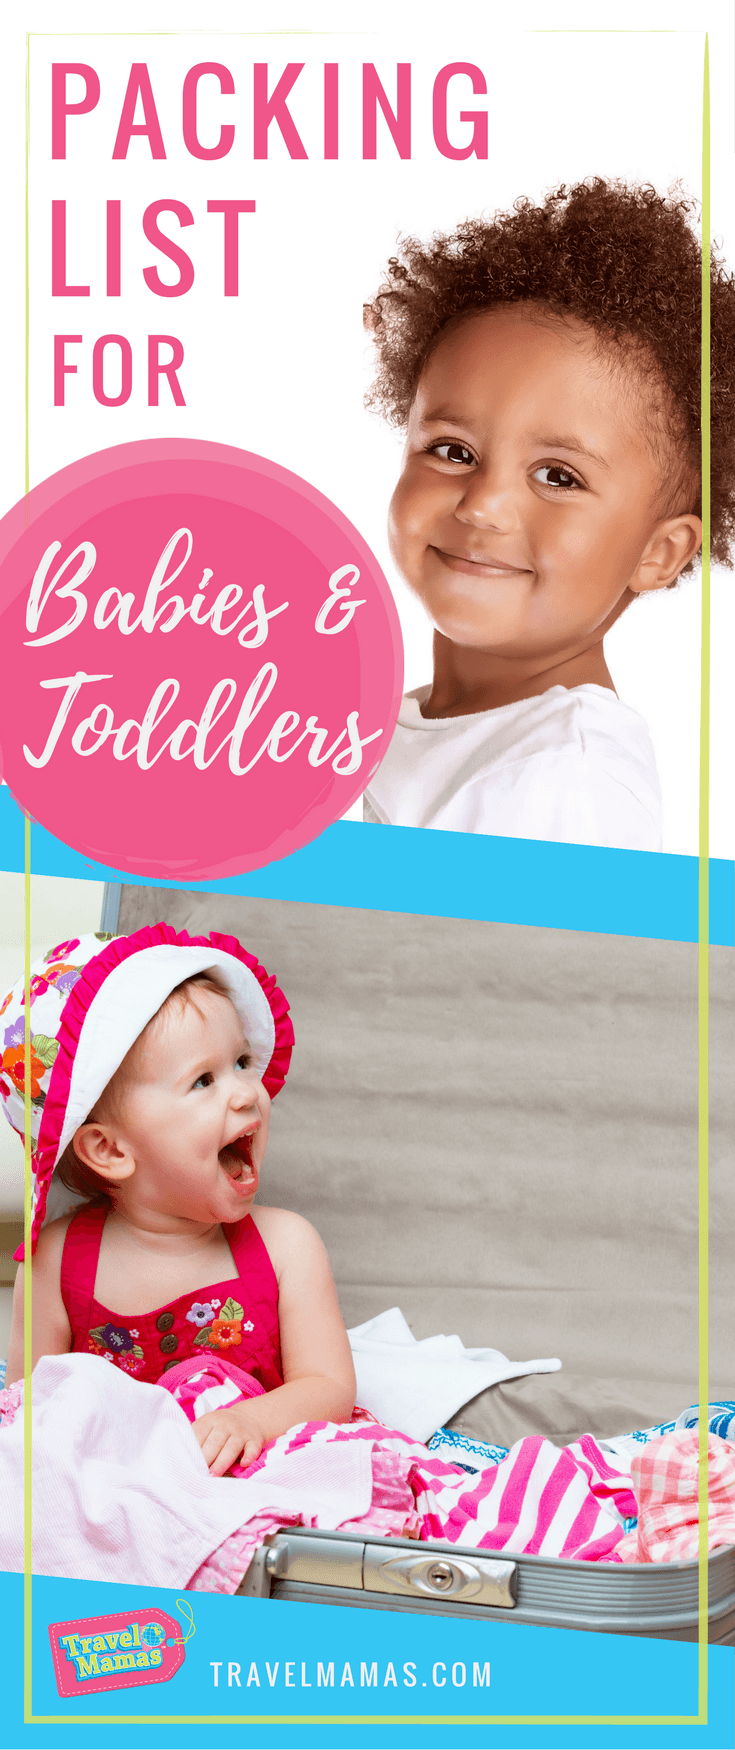 Packing list for babies and toddlers